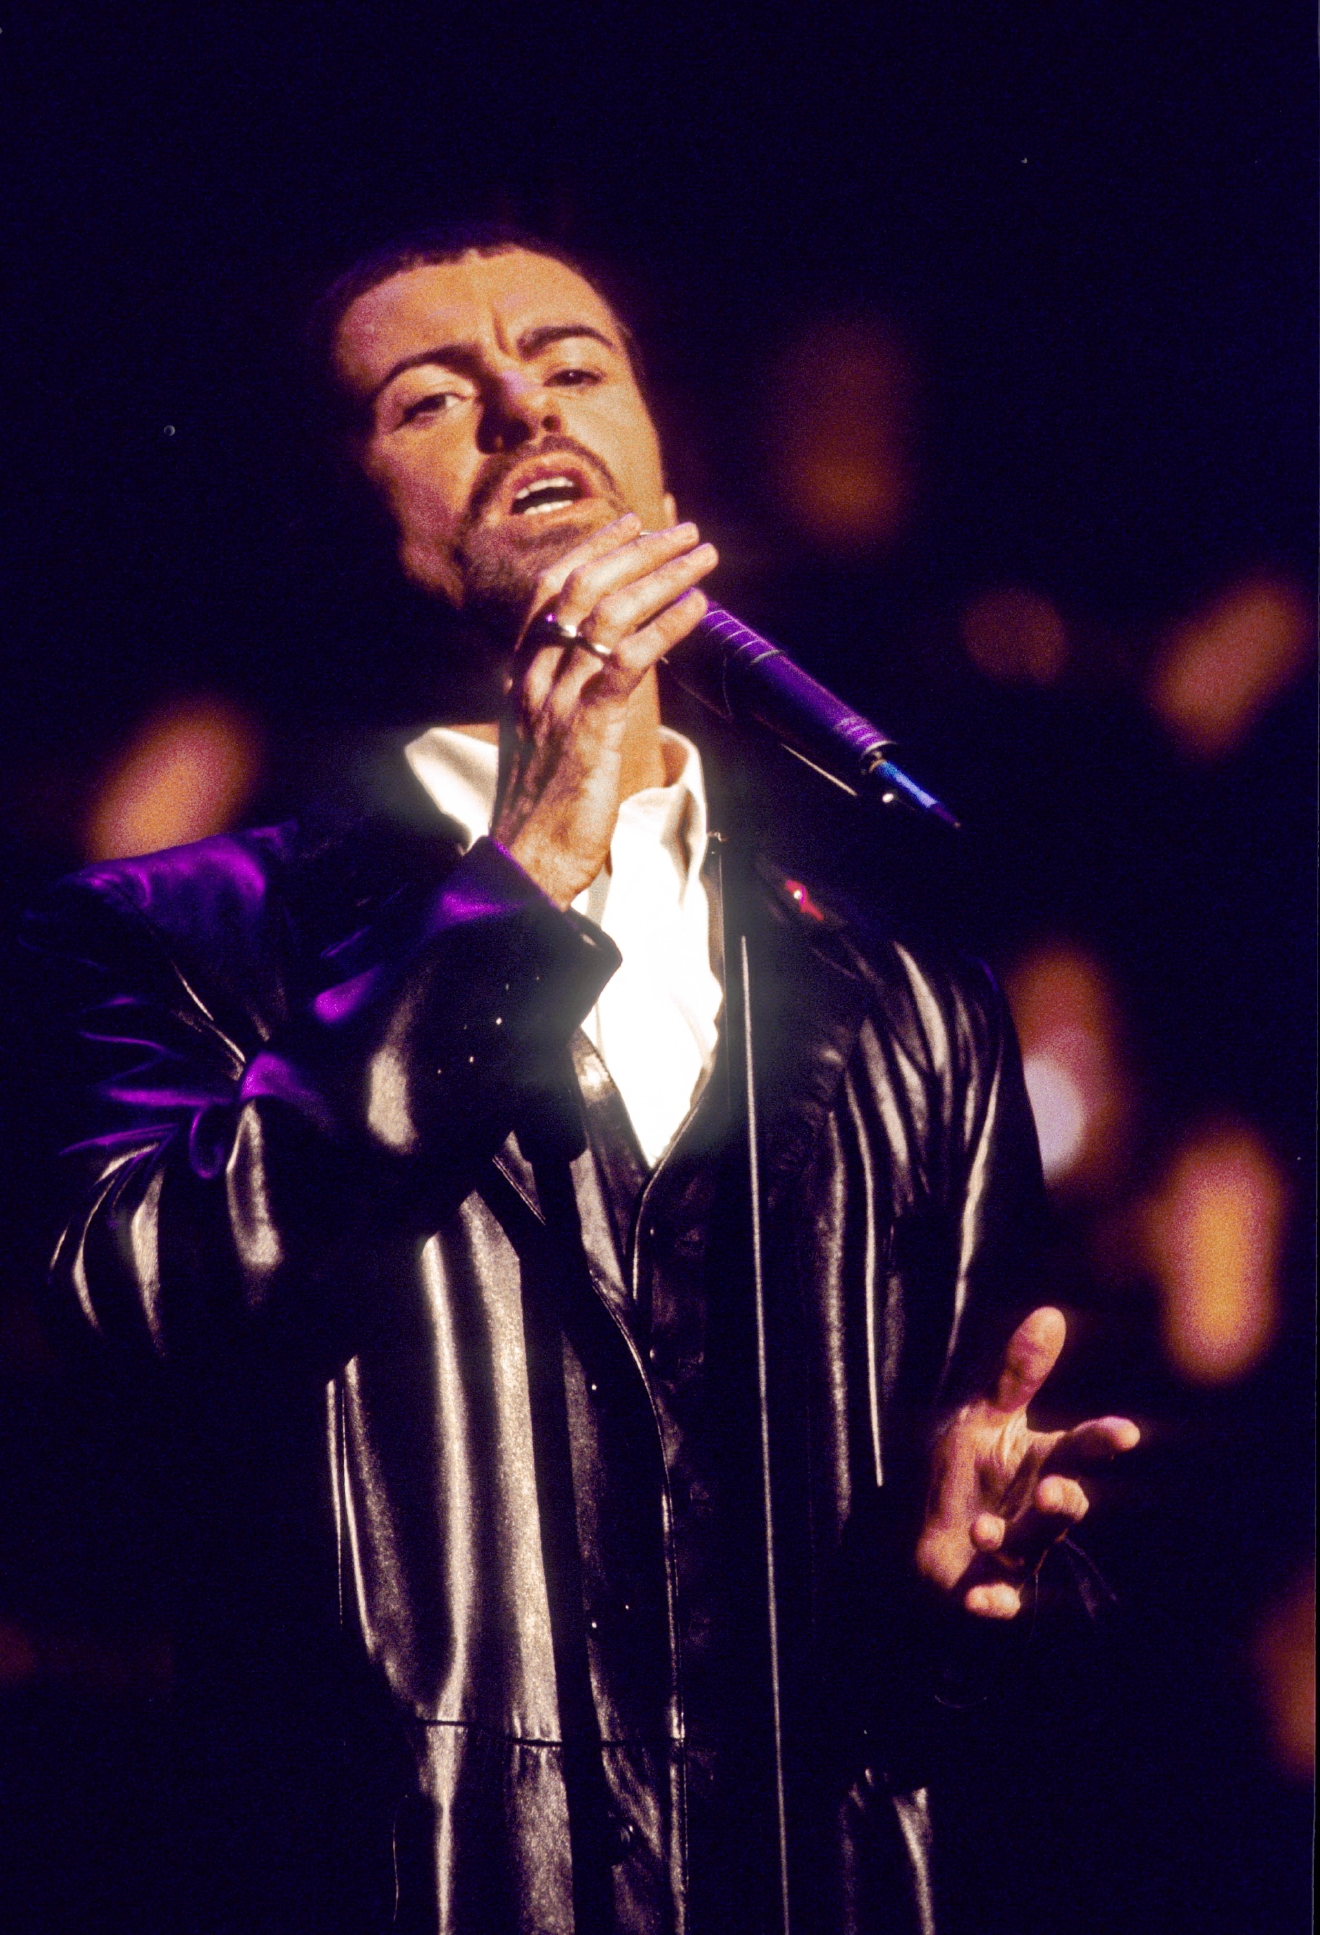 George Michael - performing live at the MTV European Awards held at the Brandenburg Gate in Berlin Germany - 24 Nov 1994.  Photo credit: George Chin/IconicPix  Where: London, United Kingdom When: 24 Nov 1994 Credit: George Chin//IconicPix/WENN.com  **Only available for publication in UK, USA, Germany**